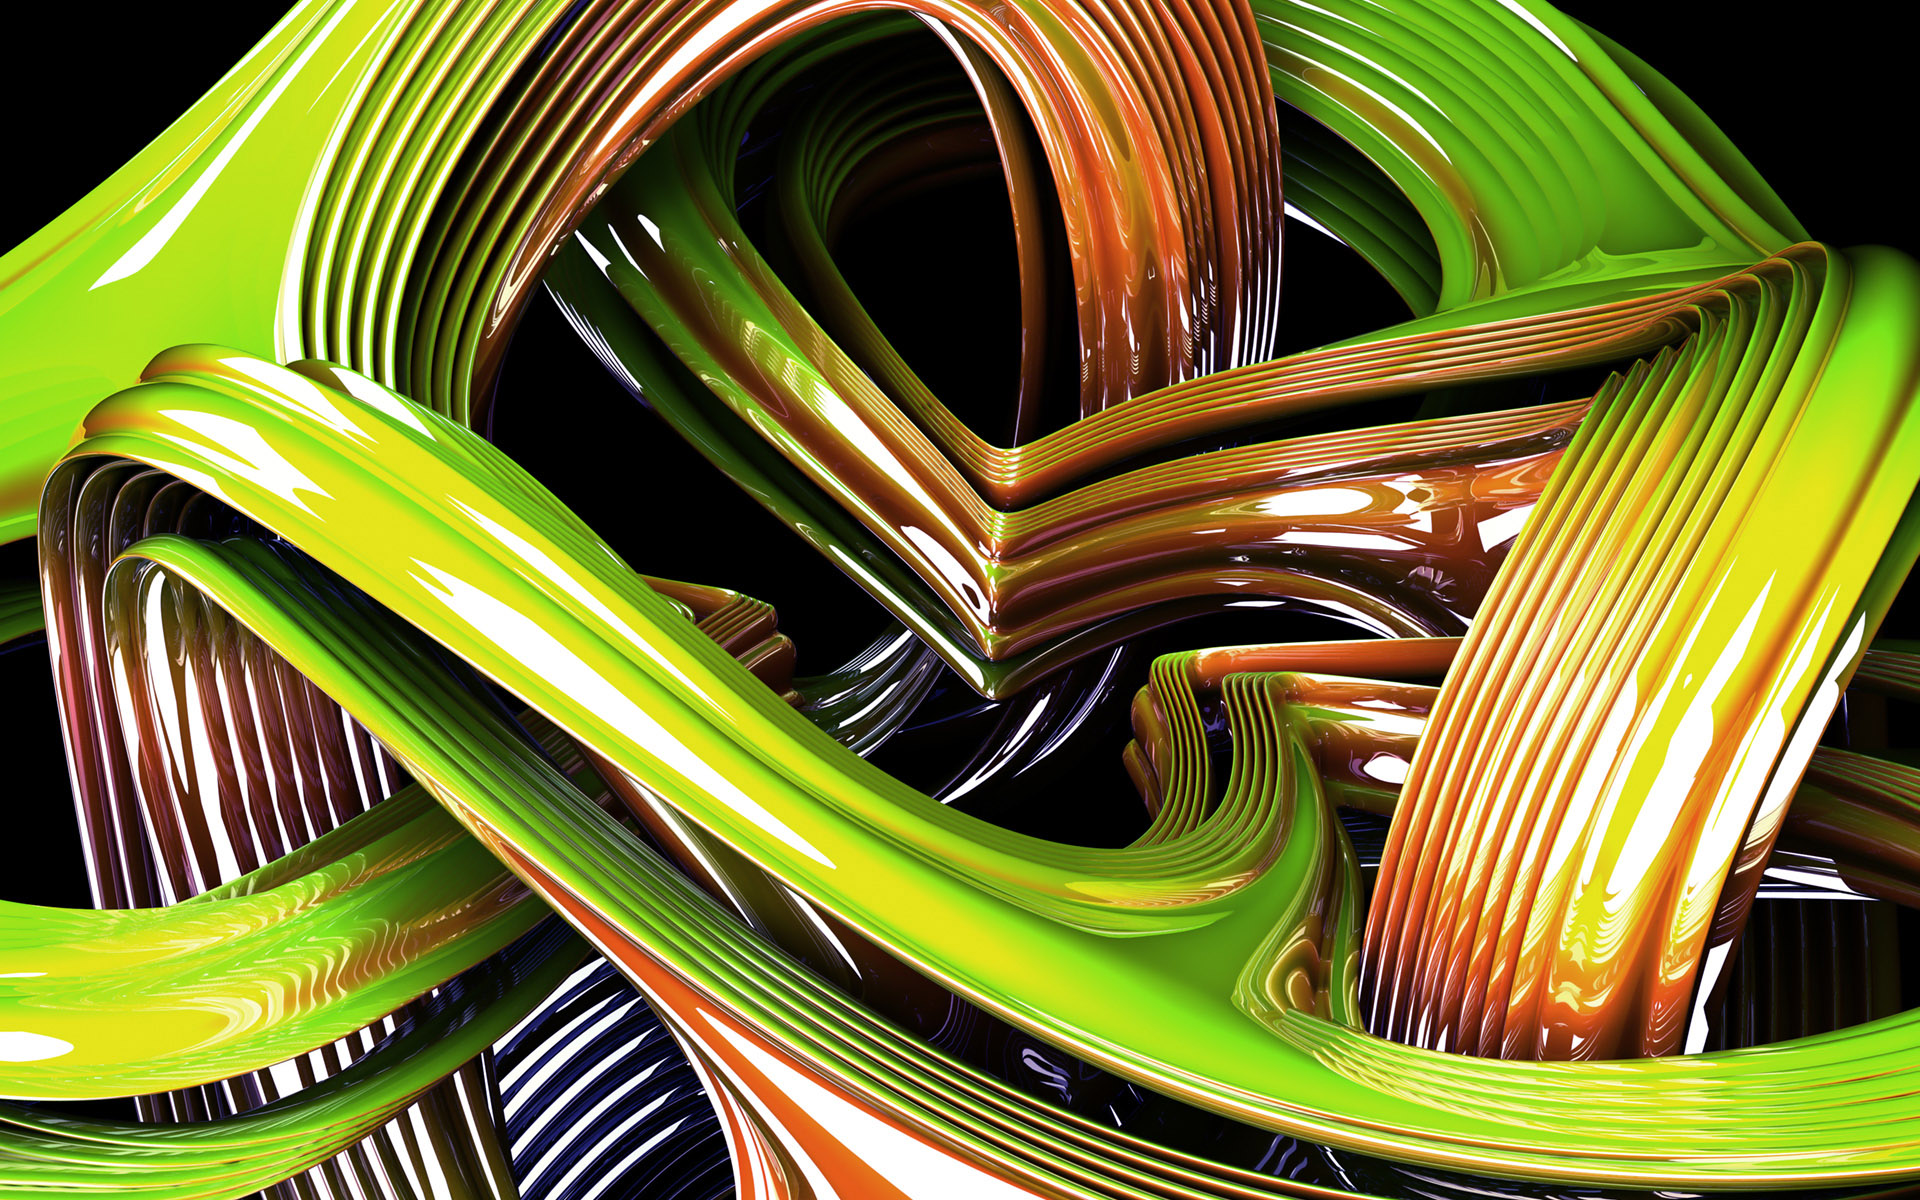 14 Abstract 3D Graphics Images